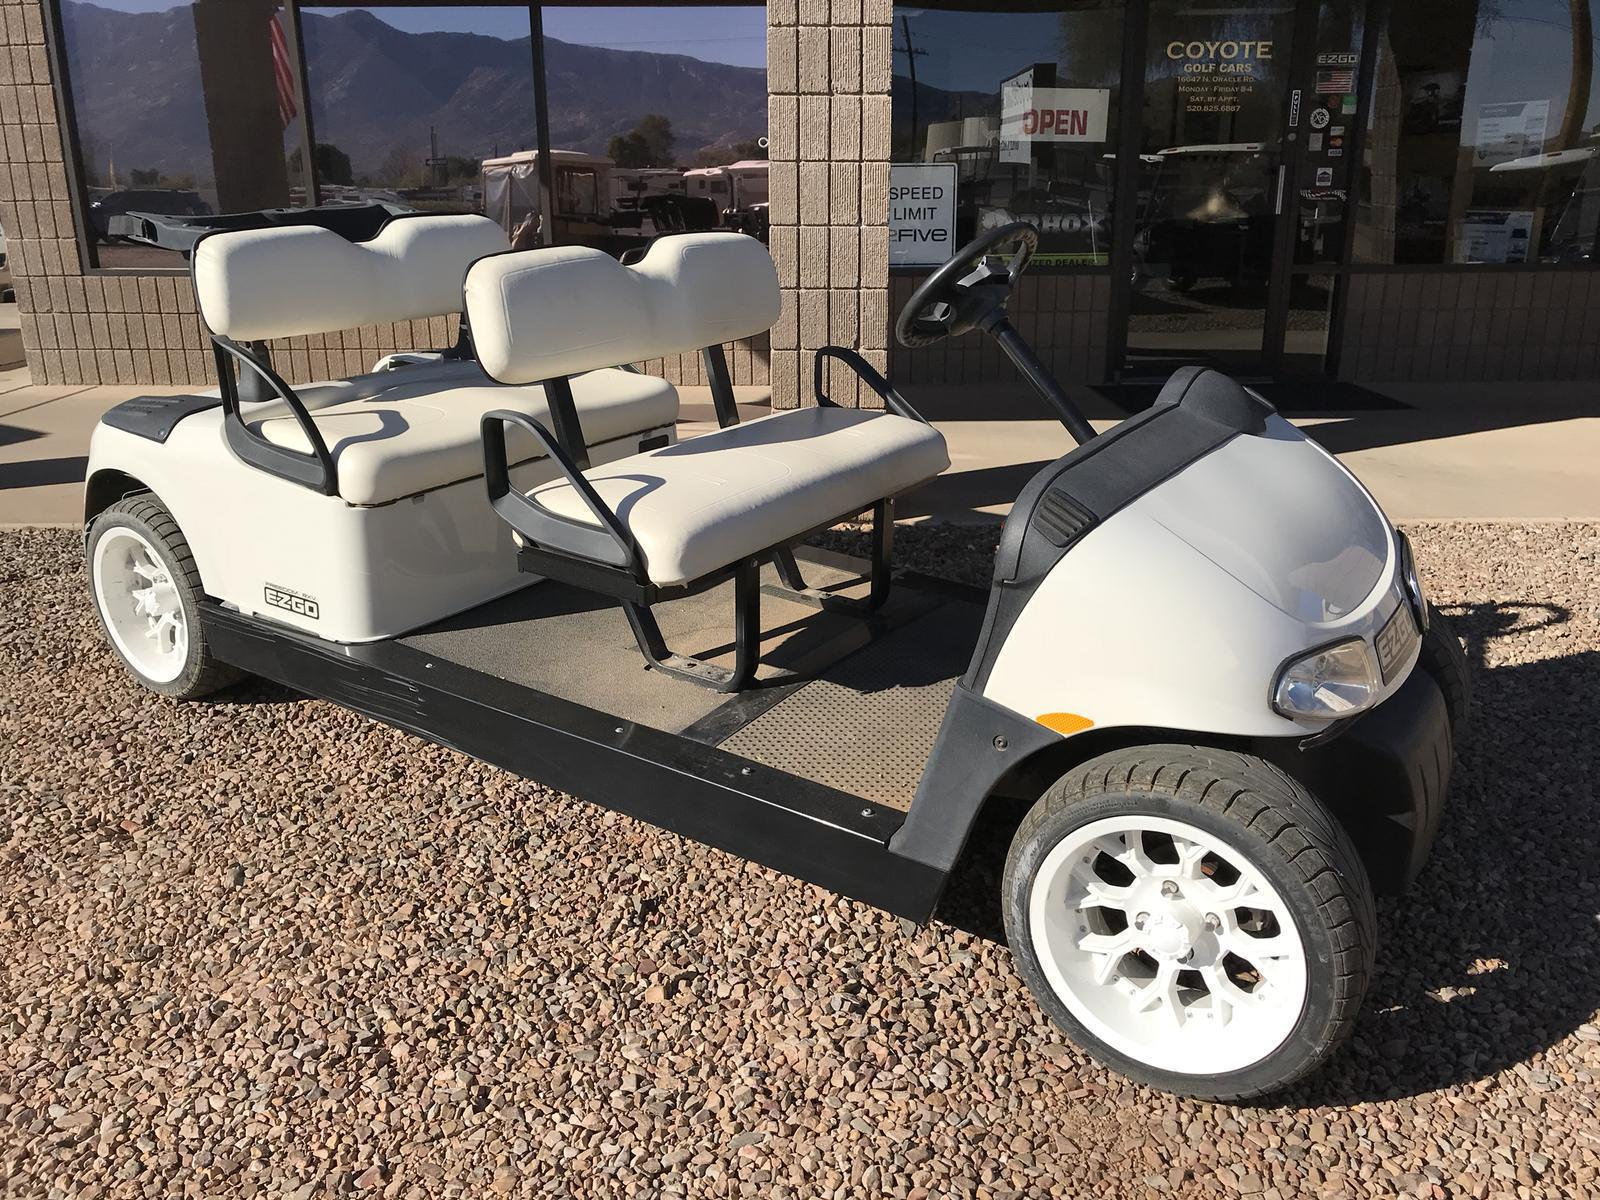 2013 E-Z-GO RXV Stretch for sale in Tucson, AZ. Coyote Golf Cars on lincoln on a rail cart, 2013 ezgo txt, 2013 ezgo electric golf cart,